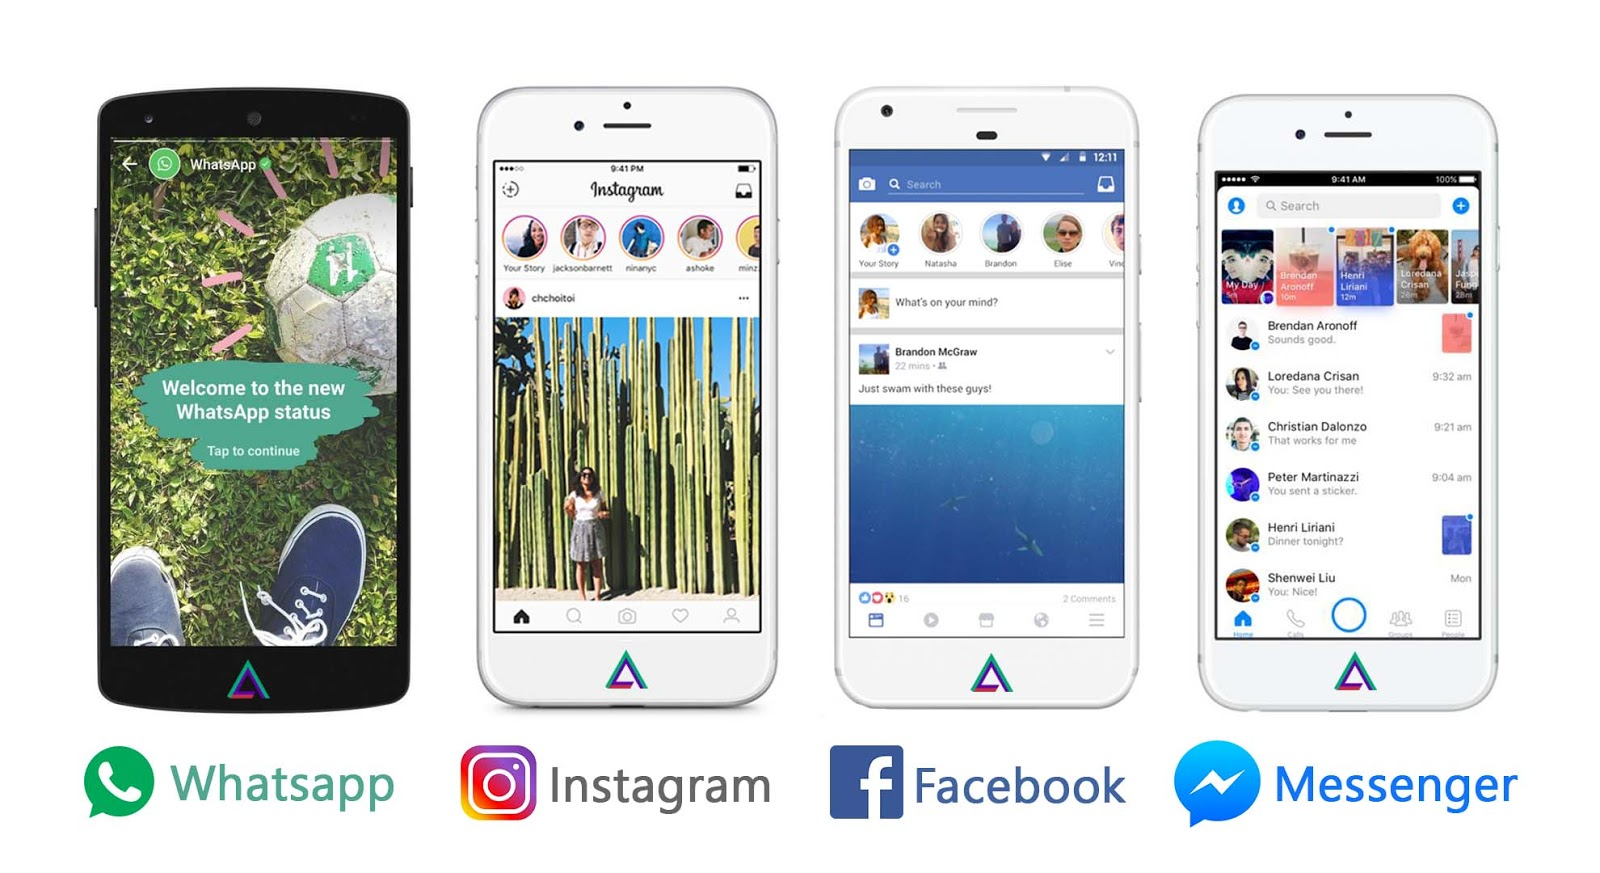 Whatsapp, Instagram, Facebook, Messenger Stories